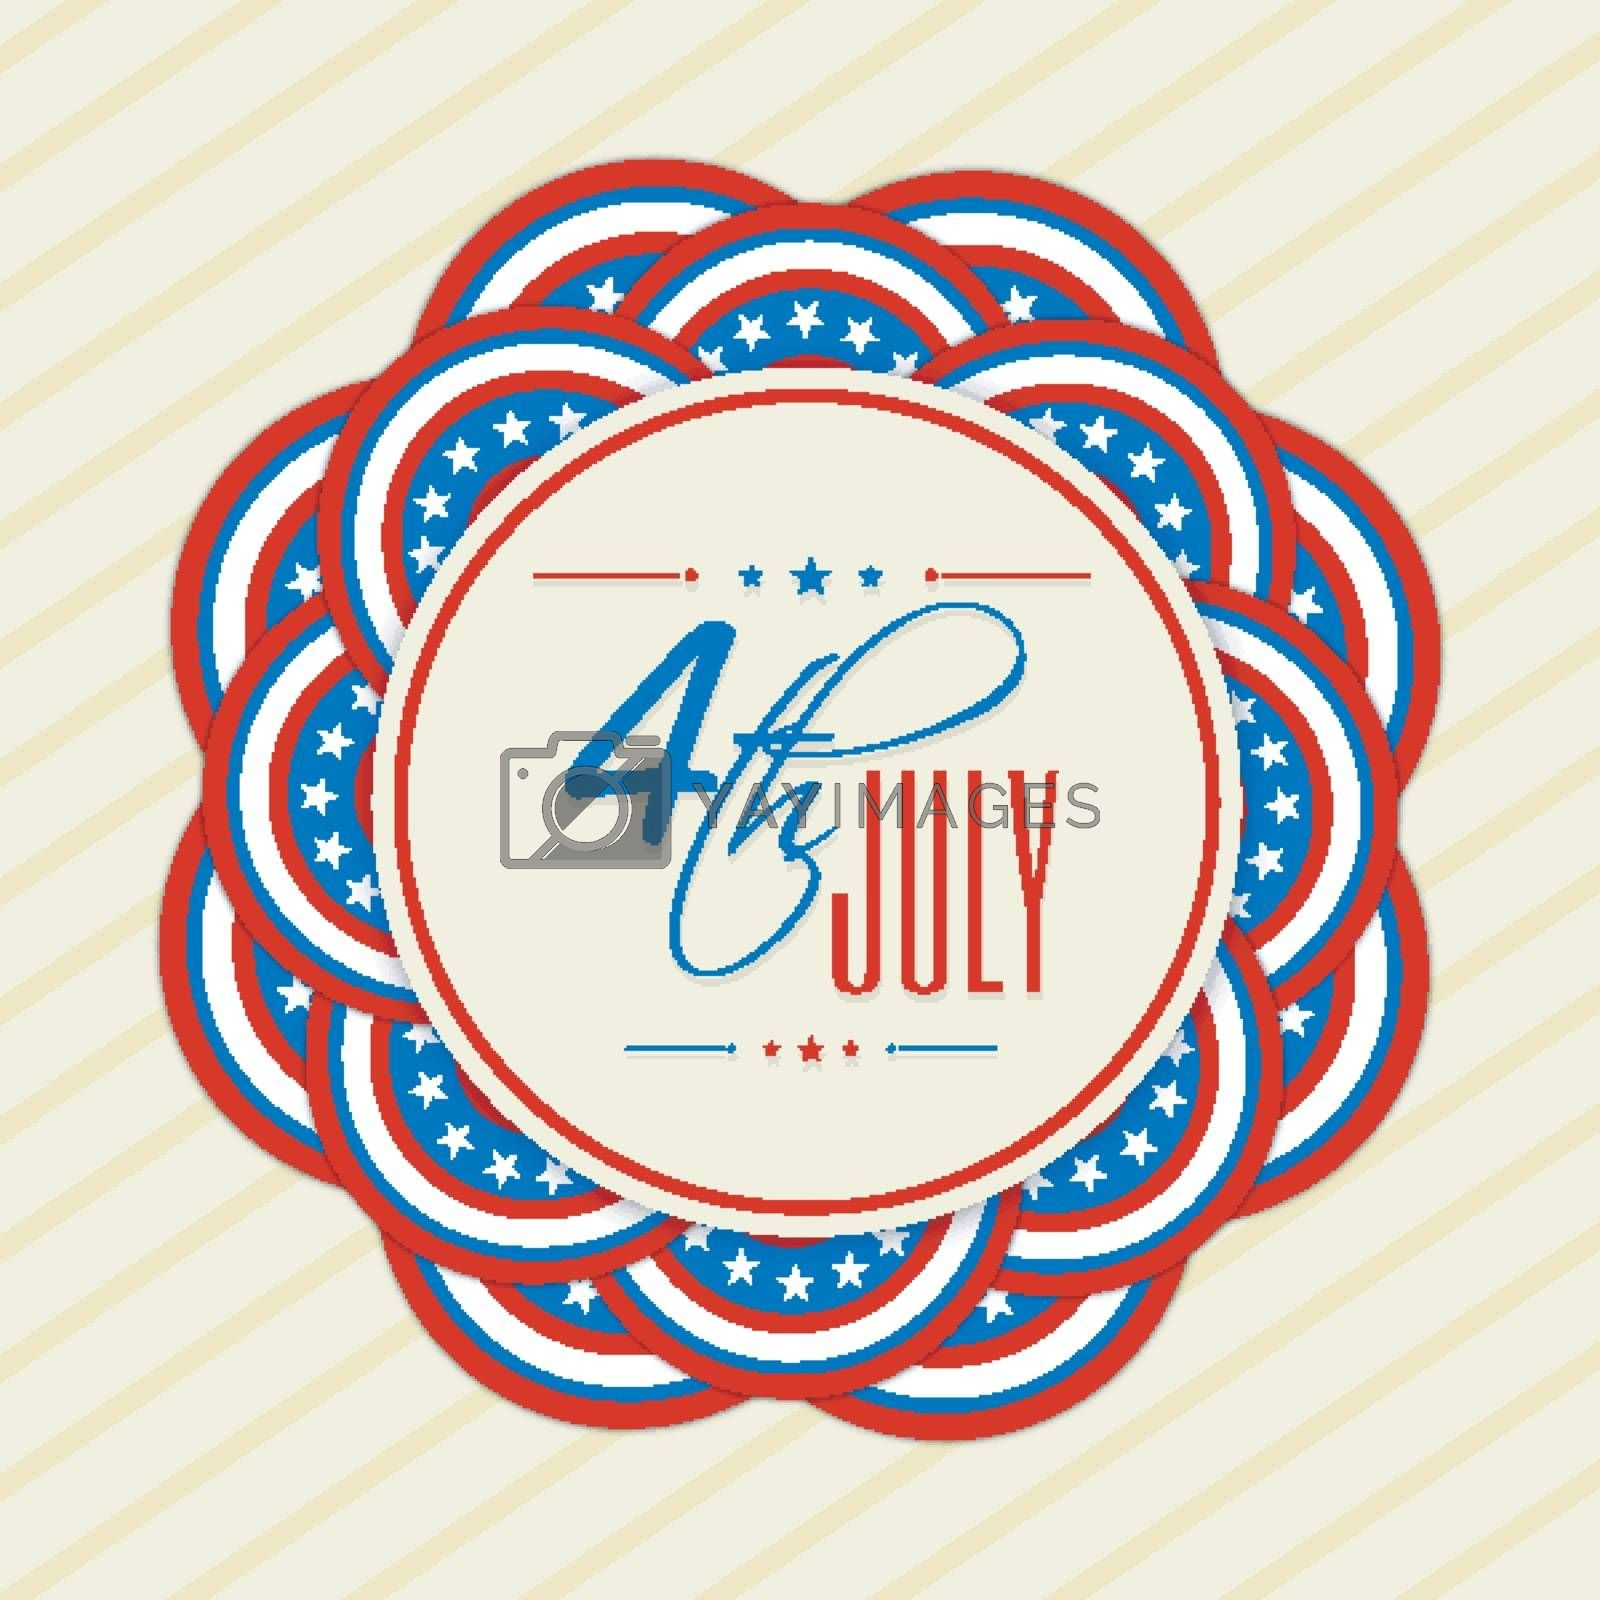 4th of July, Independence Day celebration background in American Flag colors.